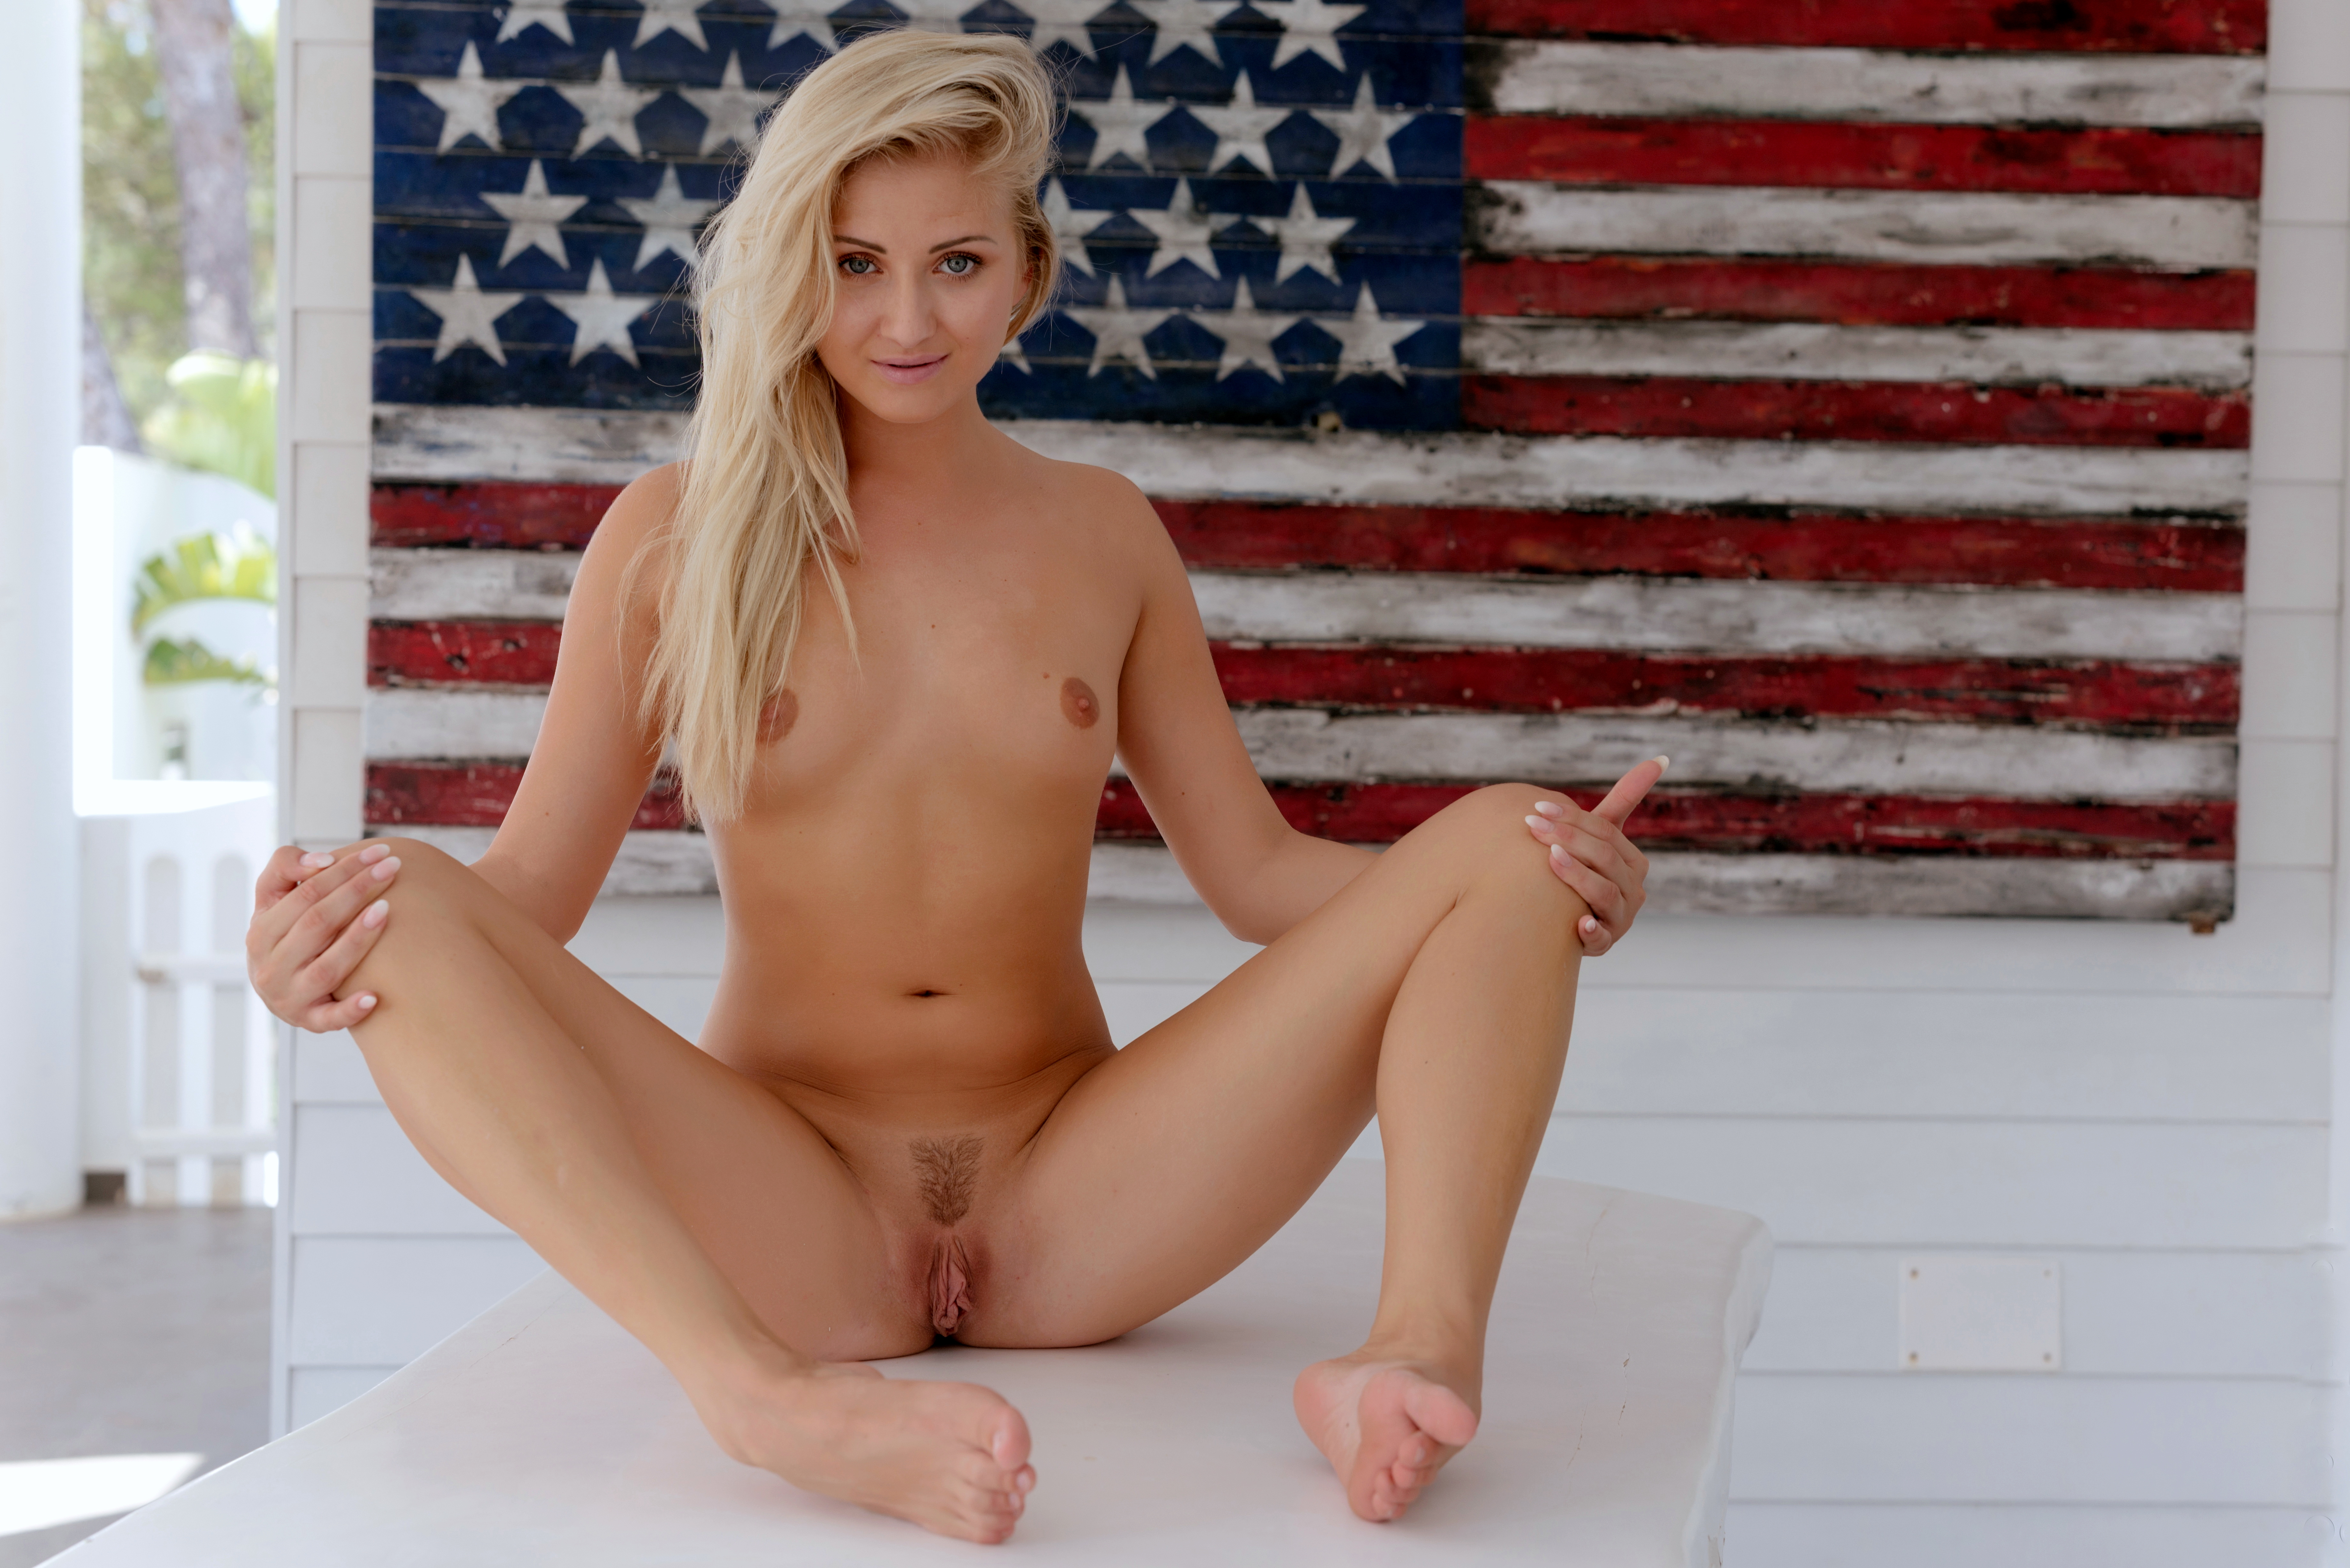 Excellent Sexy patriotic blonde nude apologise, but